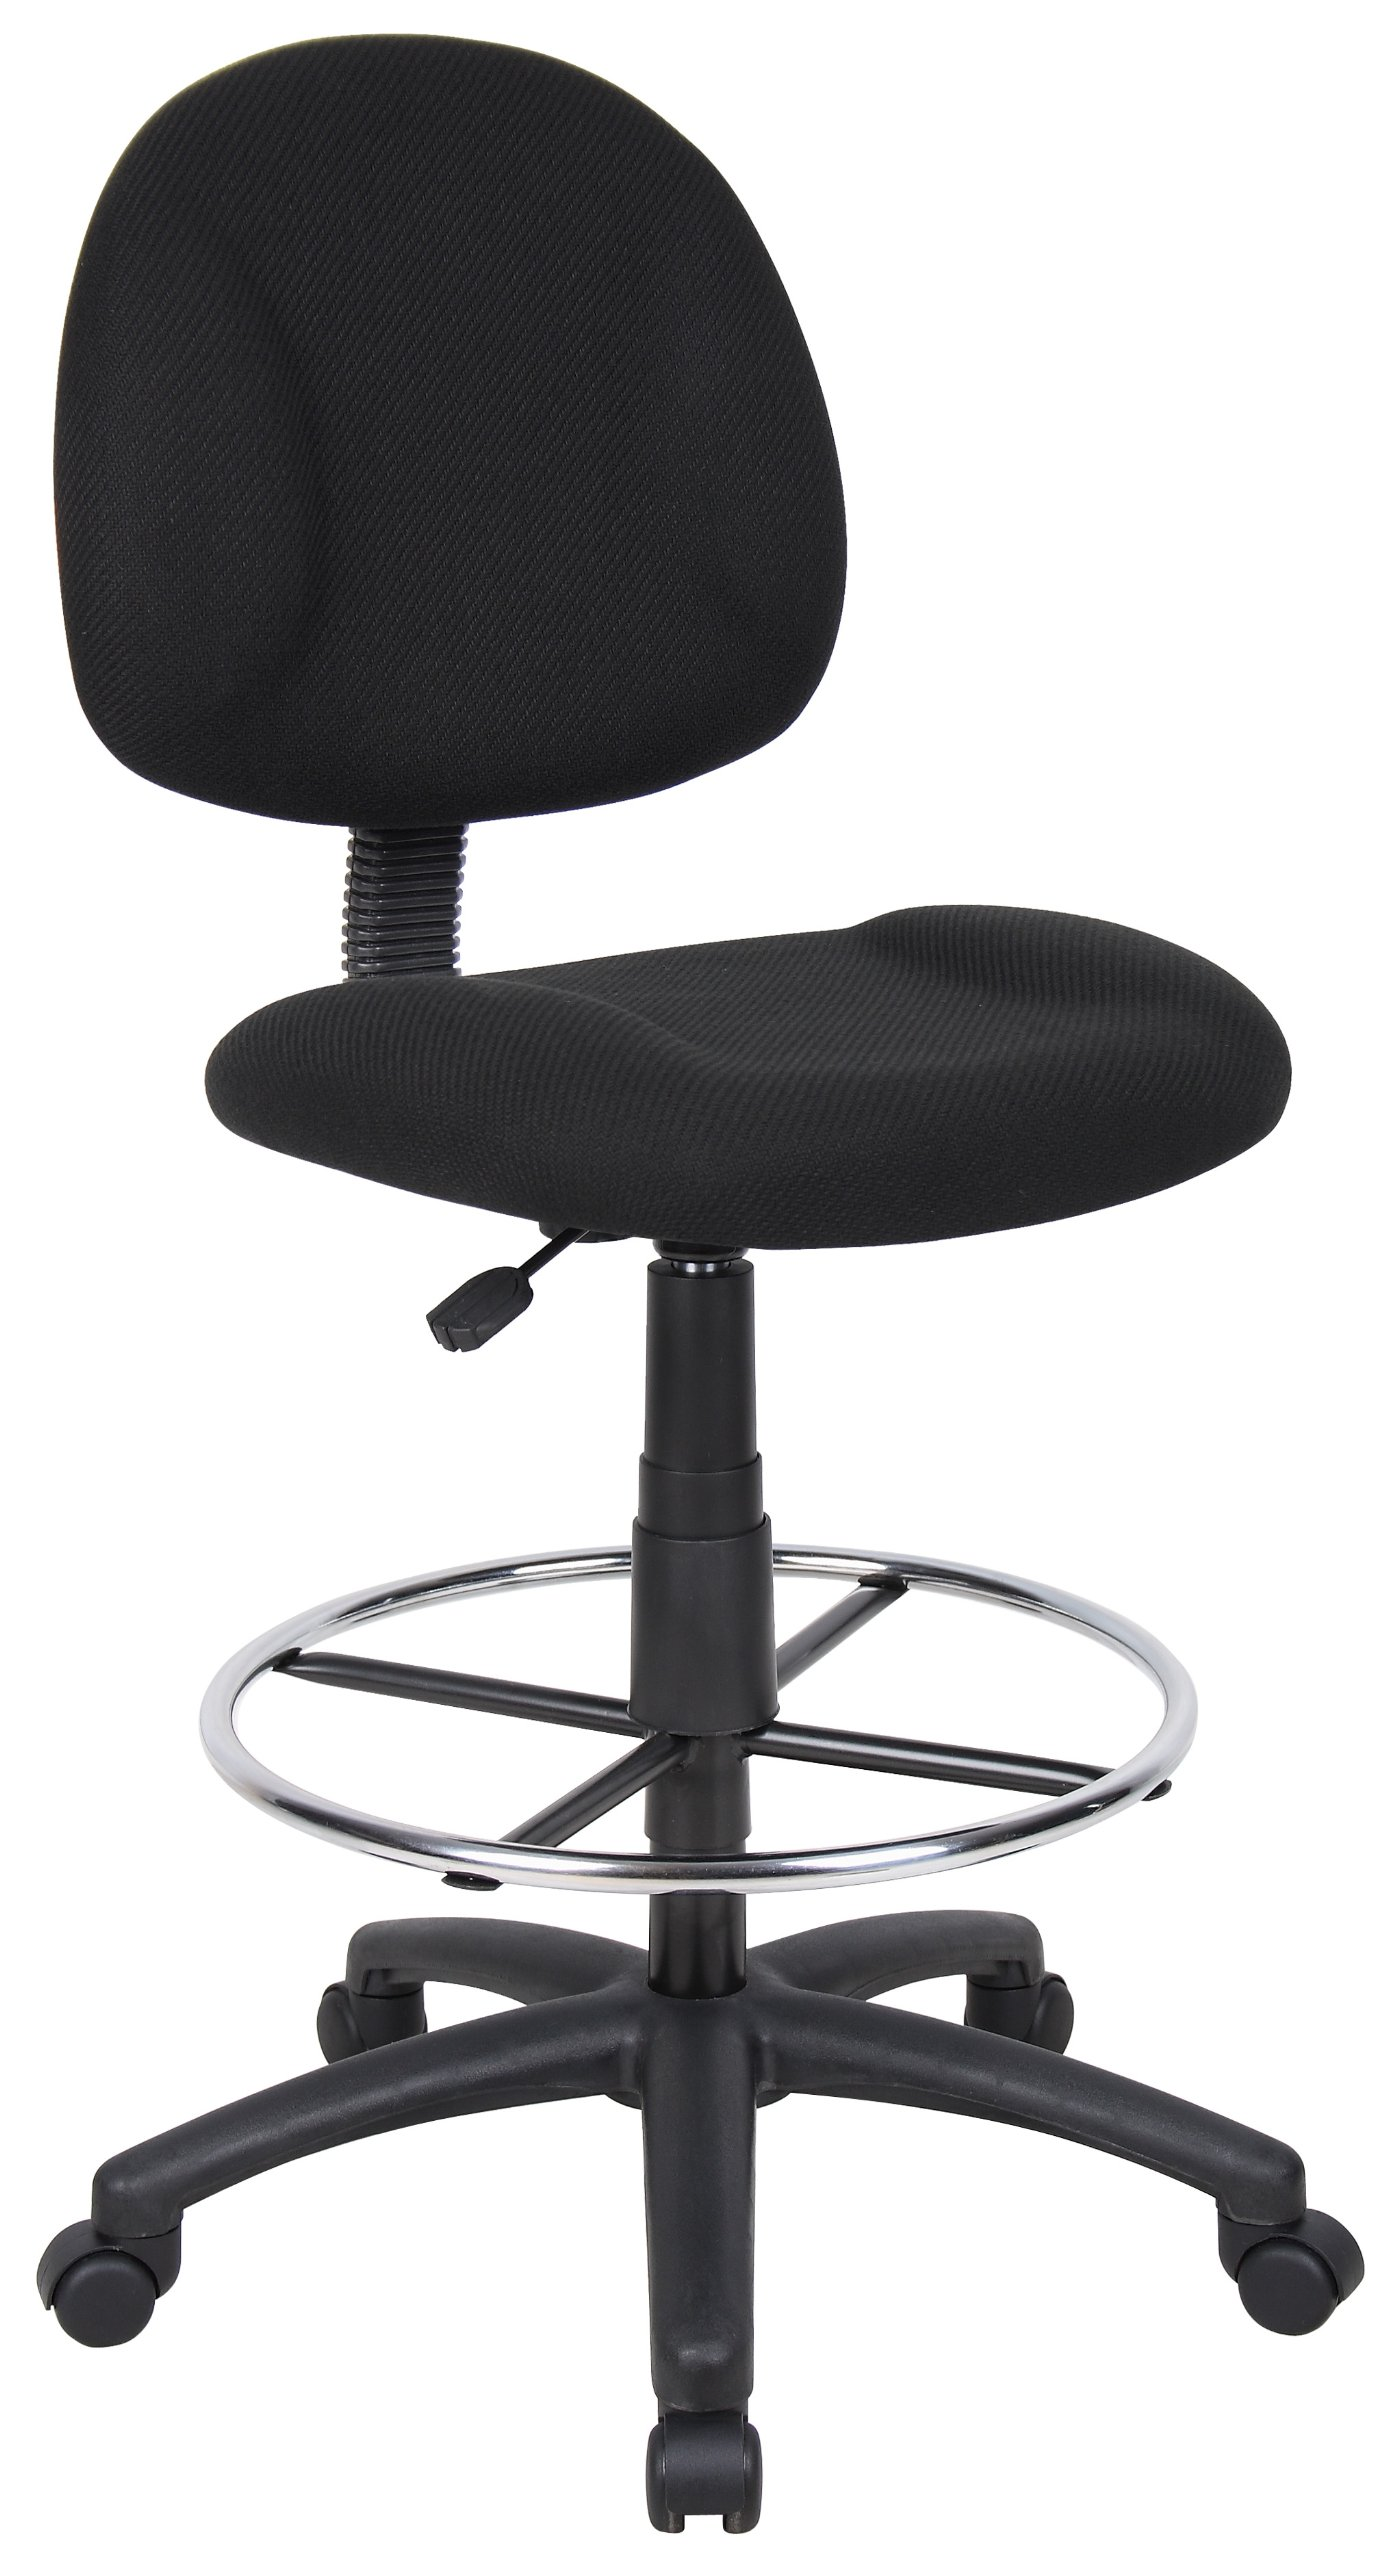 Boss Office Products B1615-BK Ergonomic Works Drafting Chair without Arms in Black by Boss Office Products